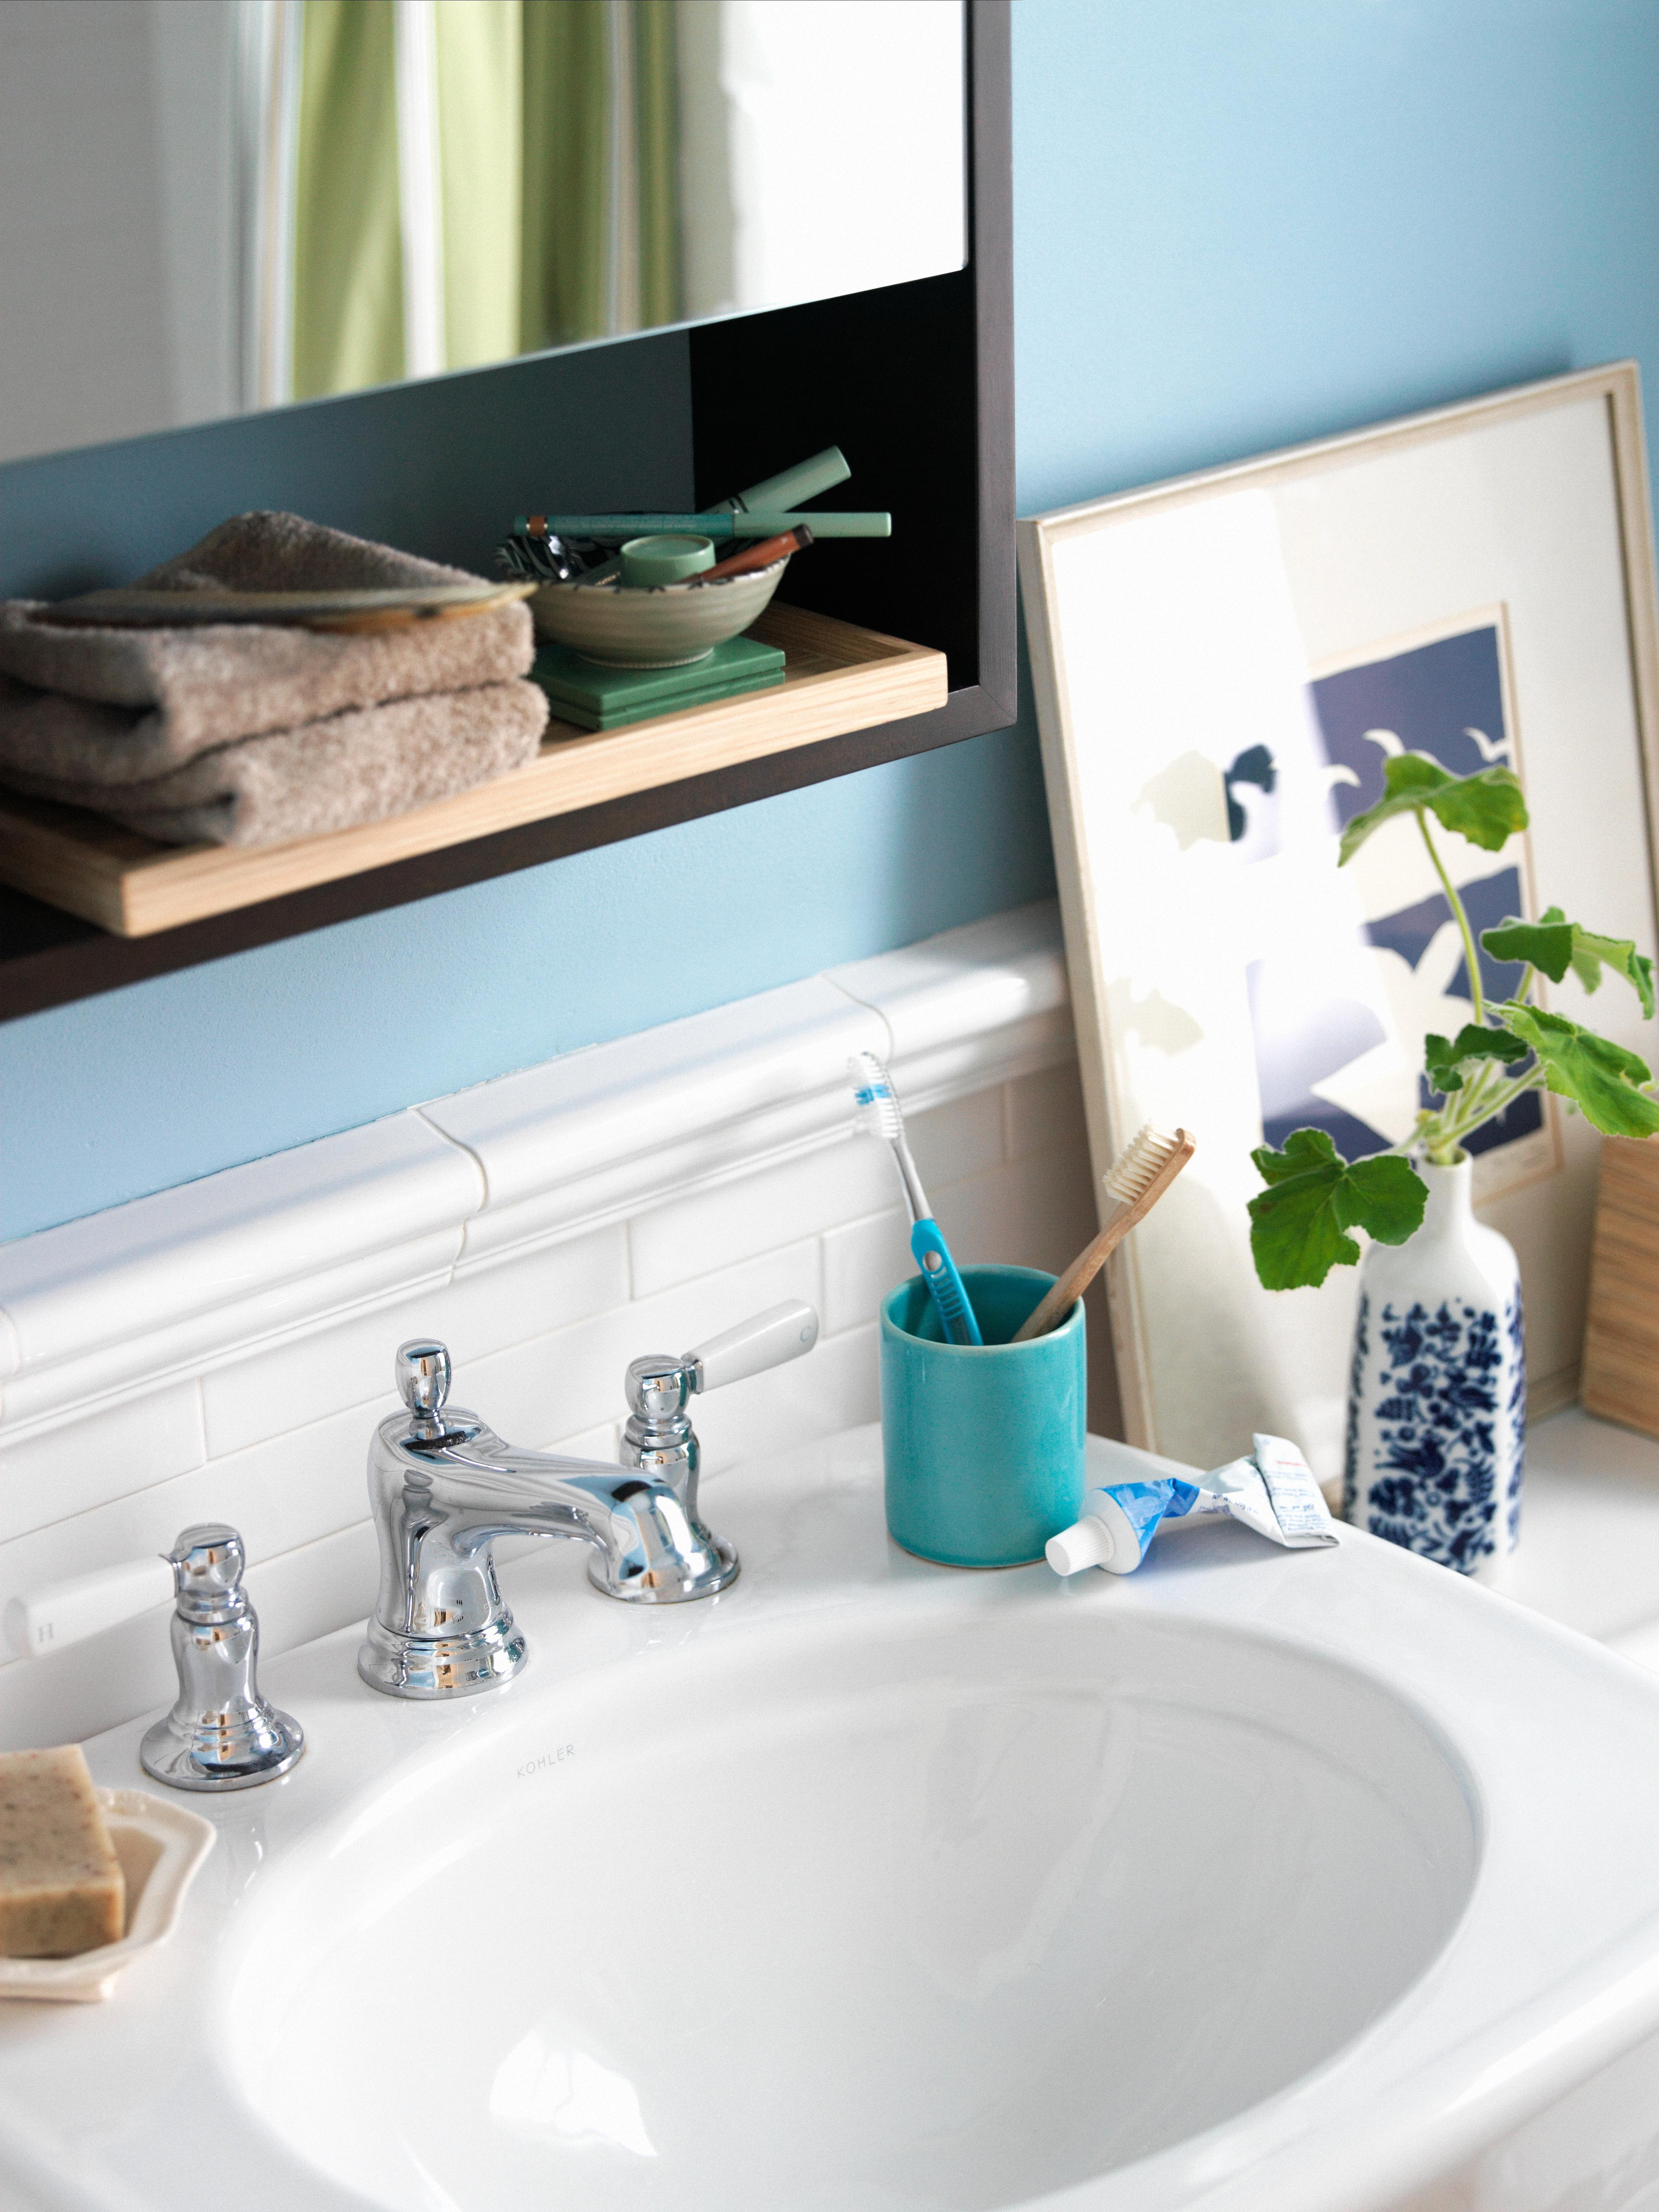 blue painted bathroom vanity sink with toothbrush holder